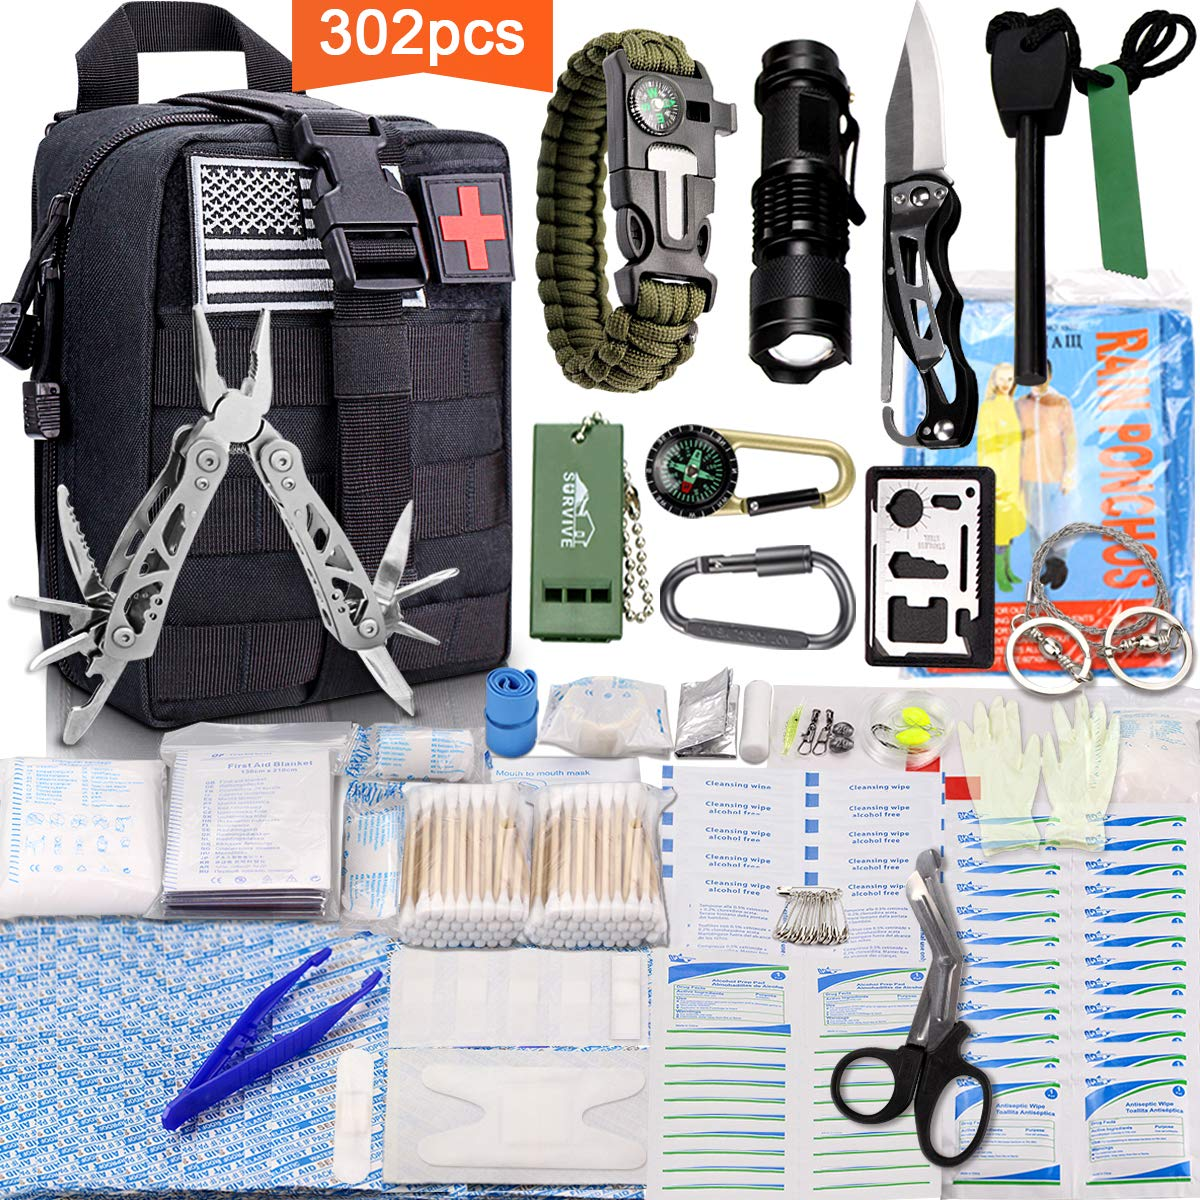 Monoki First Aid Survival Kit, 302Pcs Tactical Molle EMT IFAK Pouch Outdoor Gear EDC Emergency Survival Kits First Aid Kit Trauma Bag for Hiking Camping Hunting Car Travel or Adventures(Black) by Monoki (Image #1)